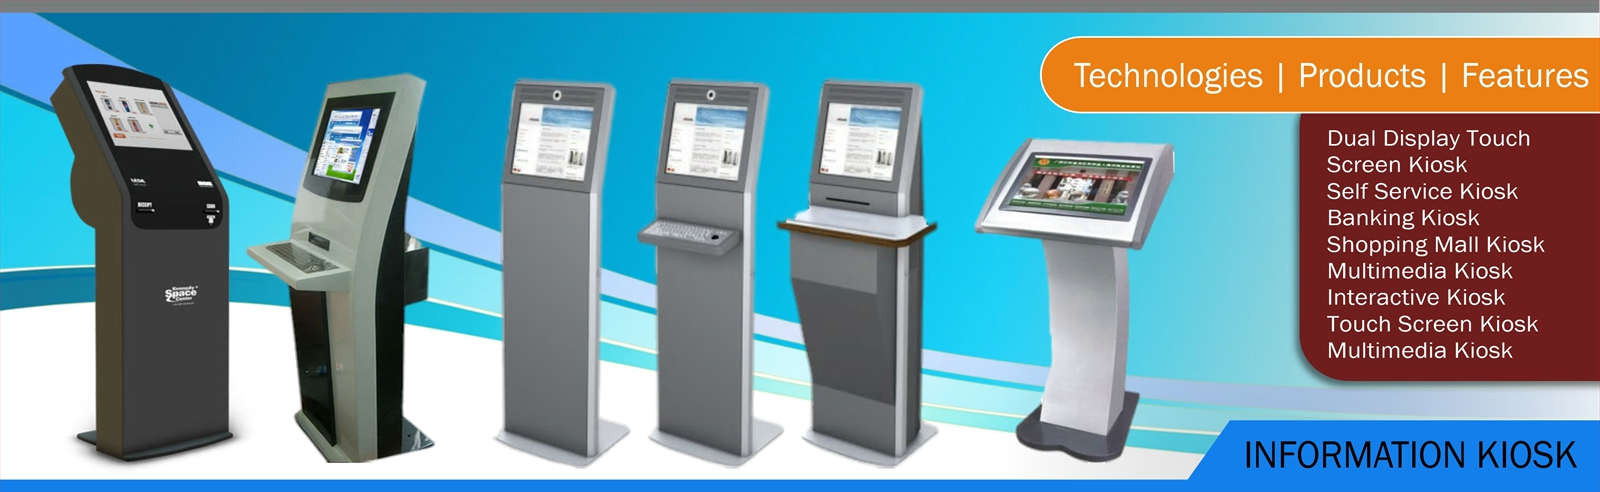 Home - Touch Screen KIOSK, Touch Screen Monitor, Touch